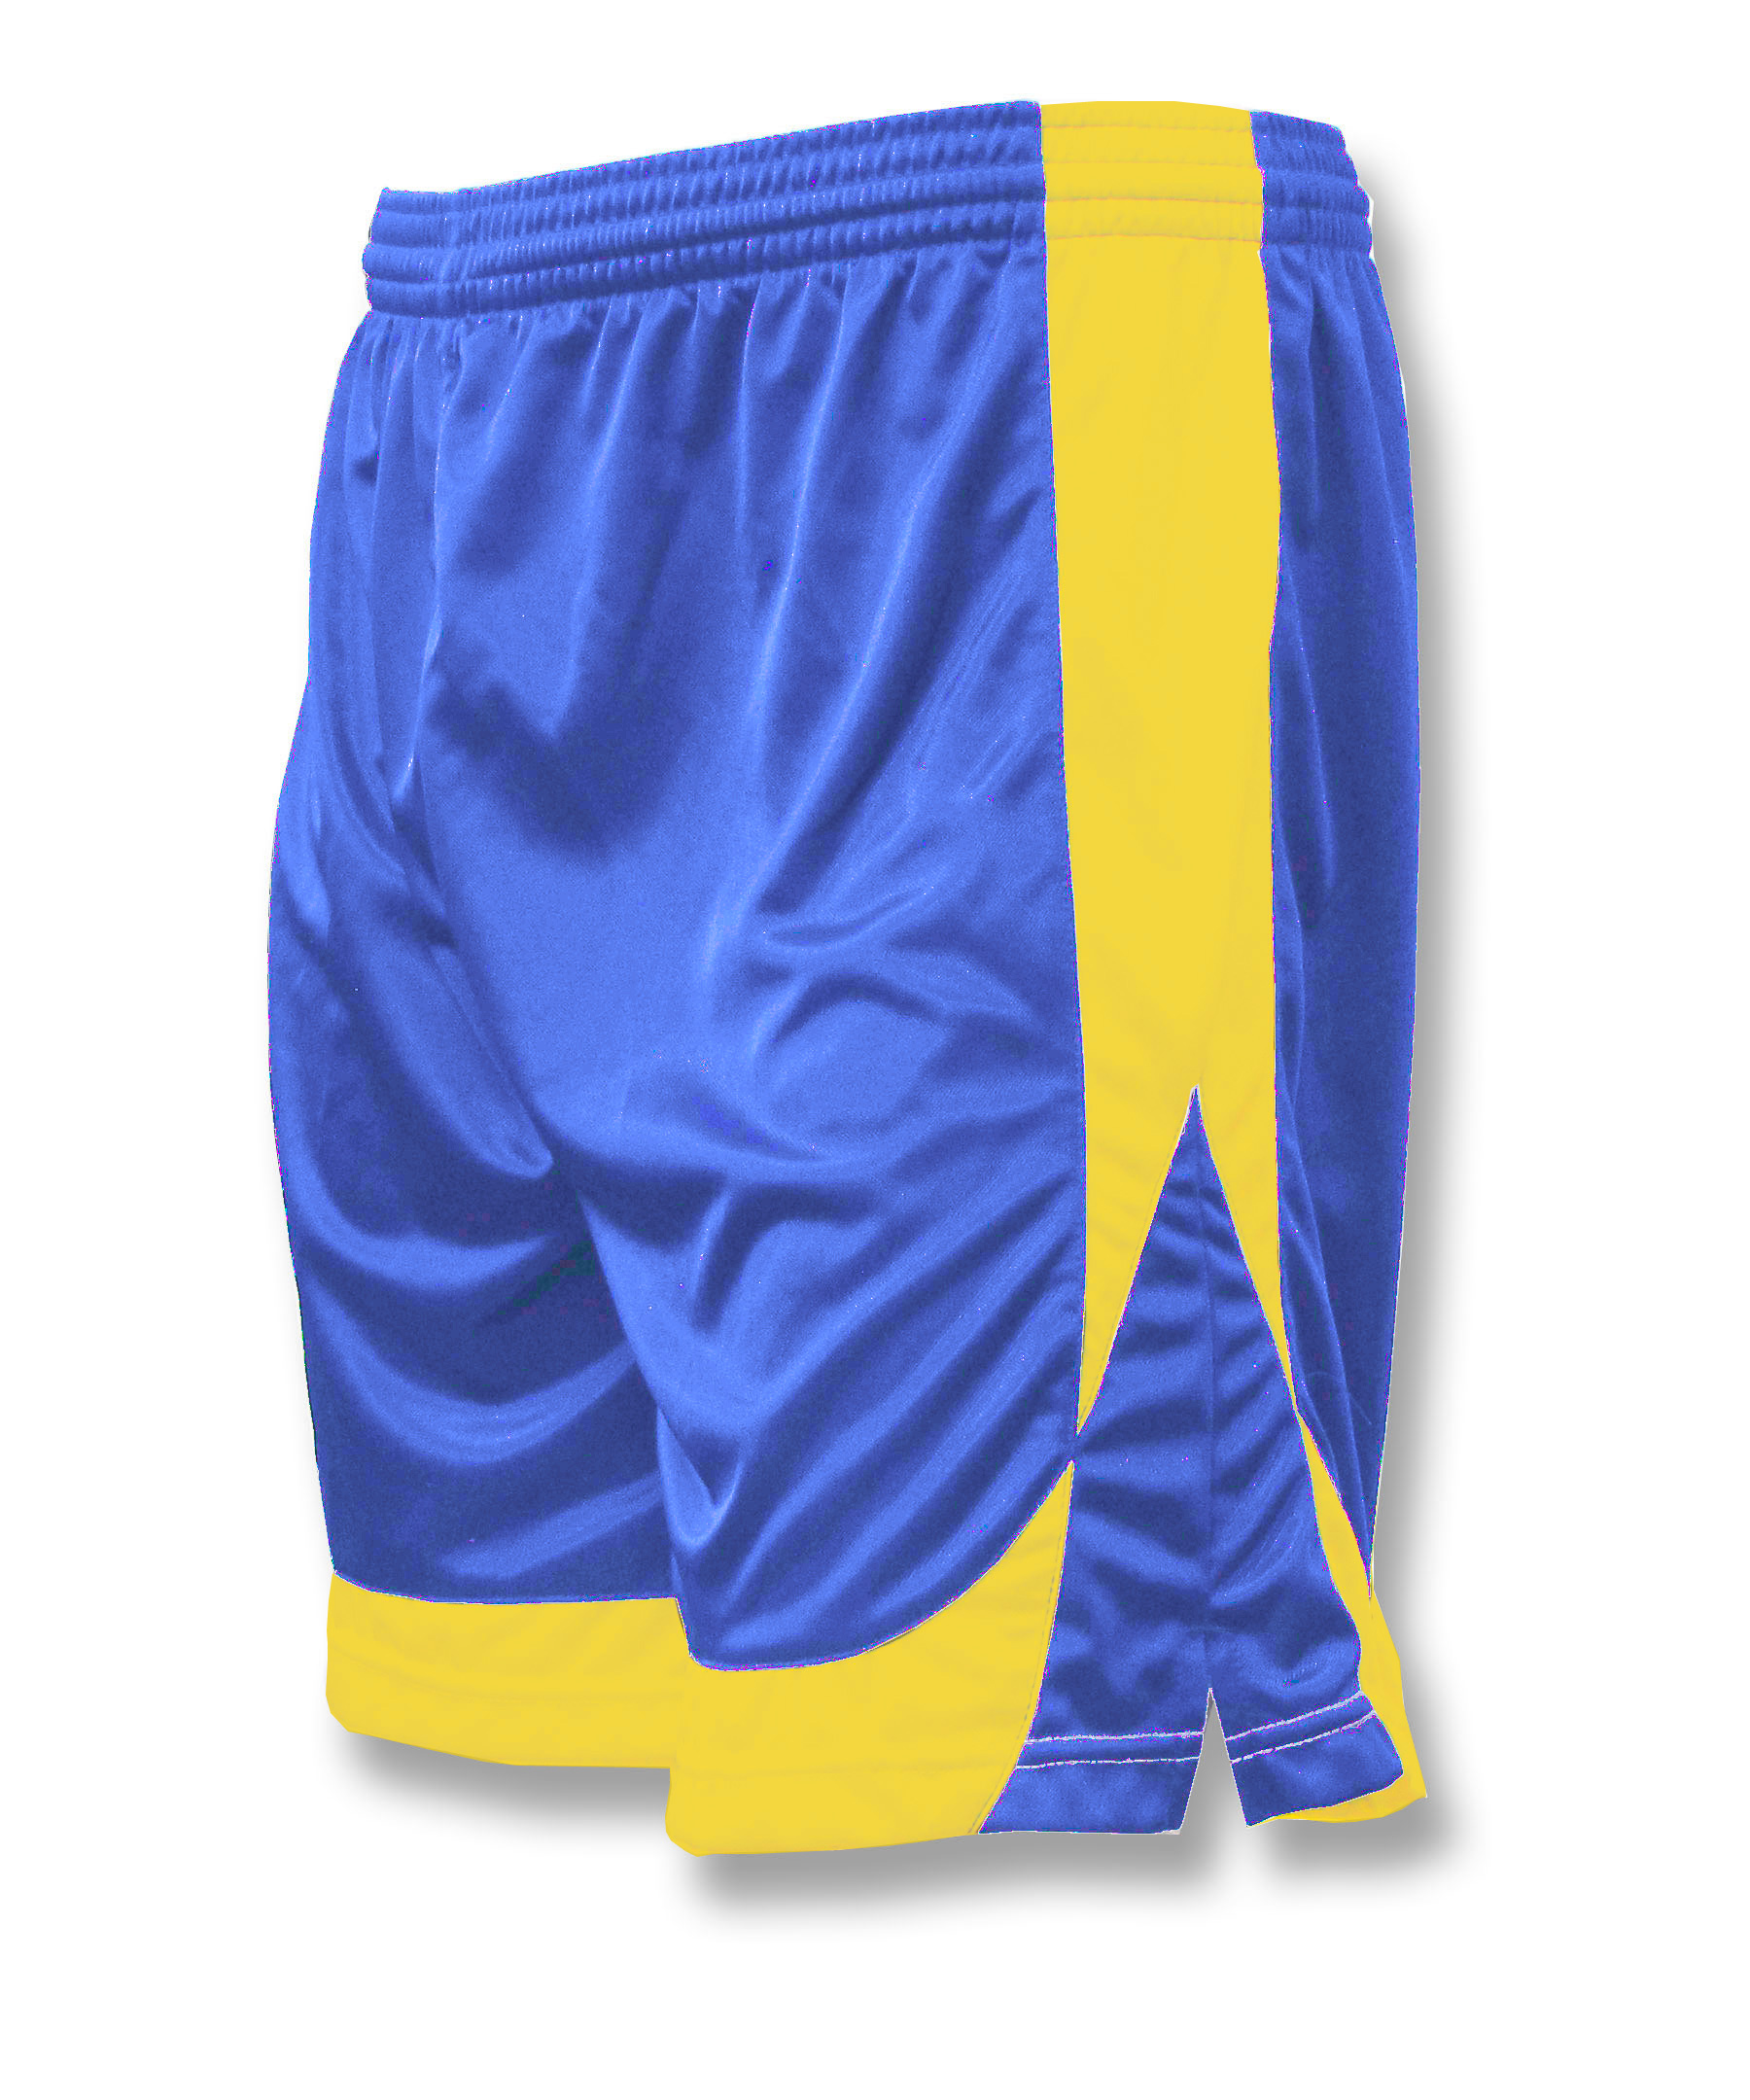 Omega soccer shorts in royal/gold by Code Four Athletics